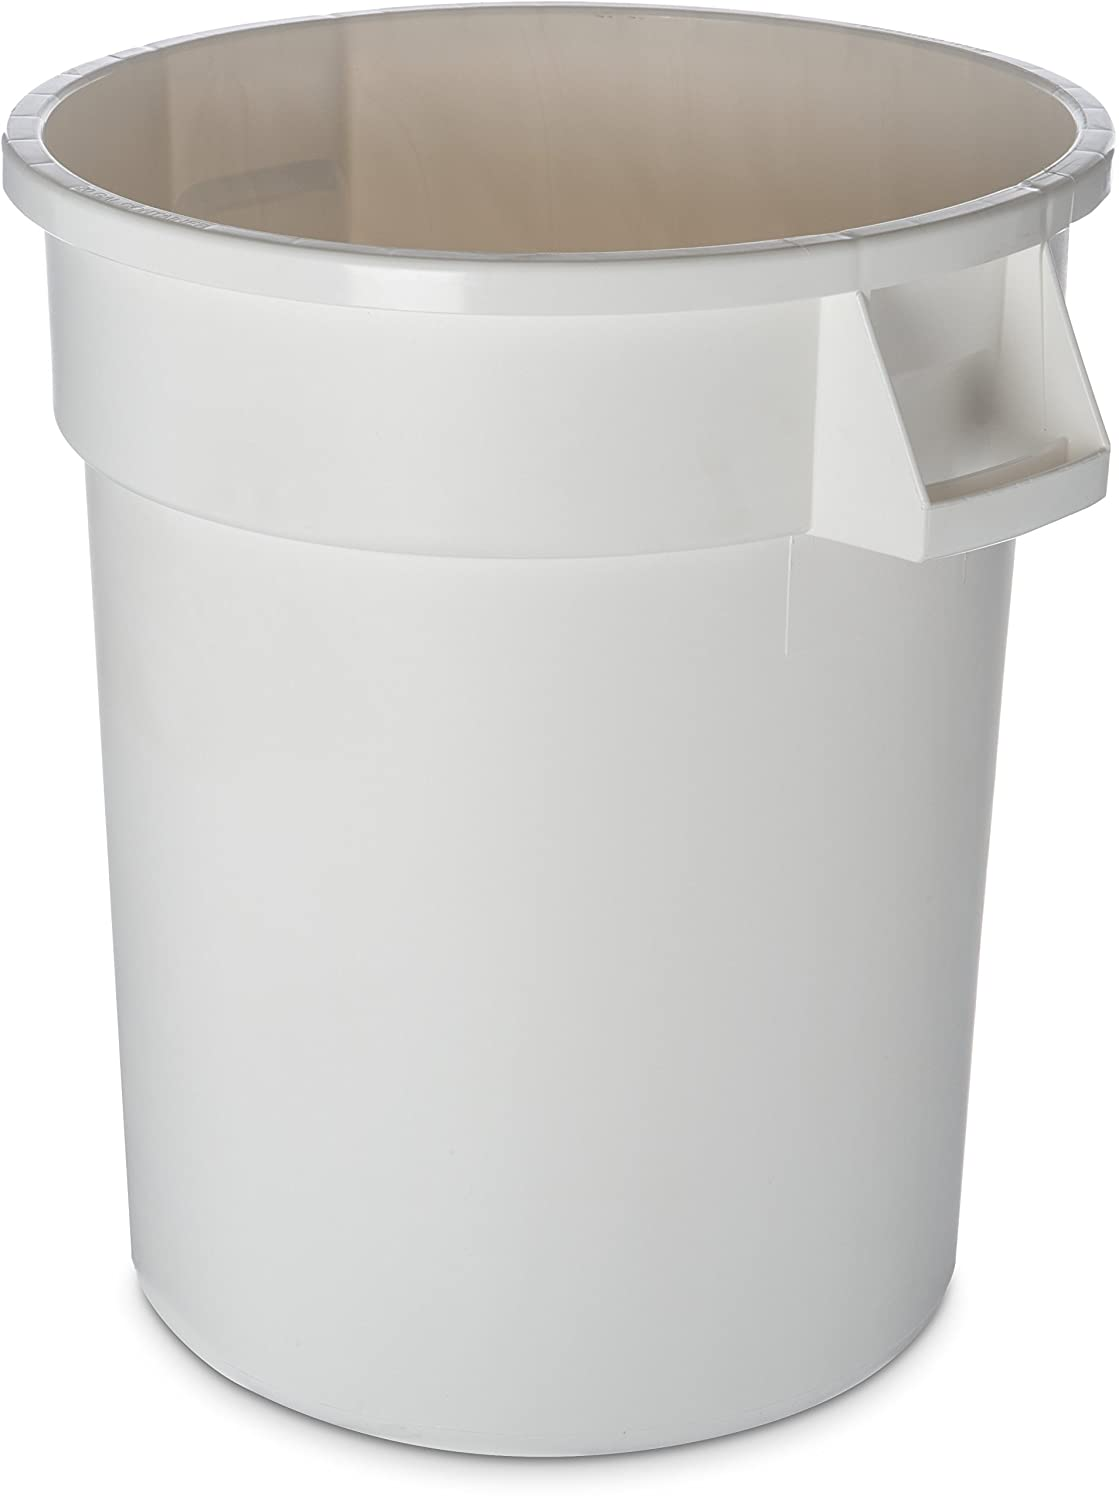 Carlisle 34102002 Bronco Round Waste Container Only, 20 Gallon, White